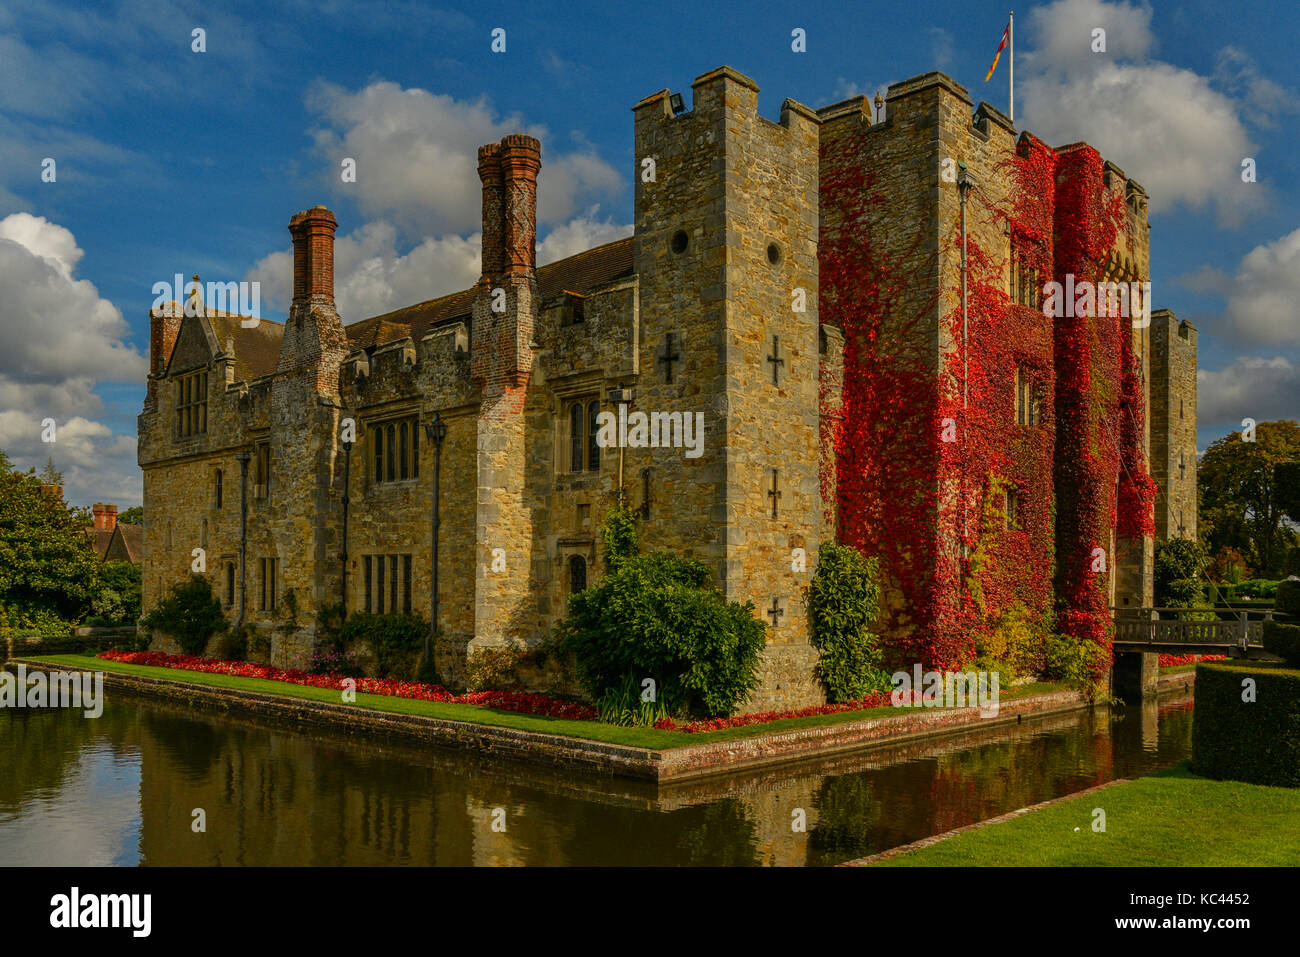 The ivy covered medieval Levers Castle in Kent, UK - Stock Image